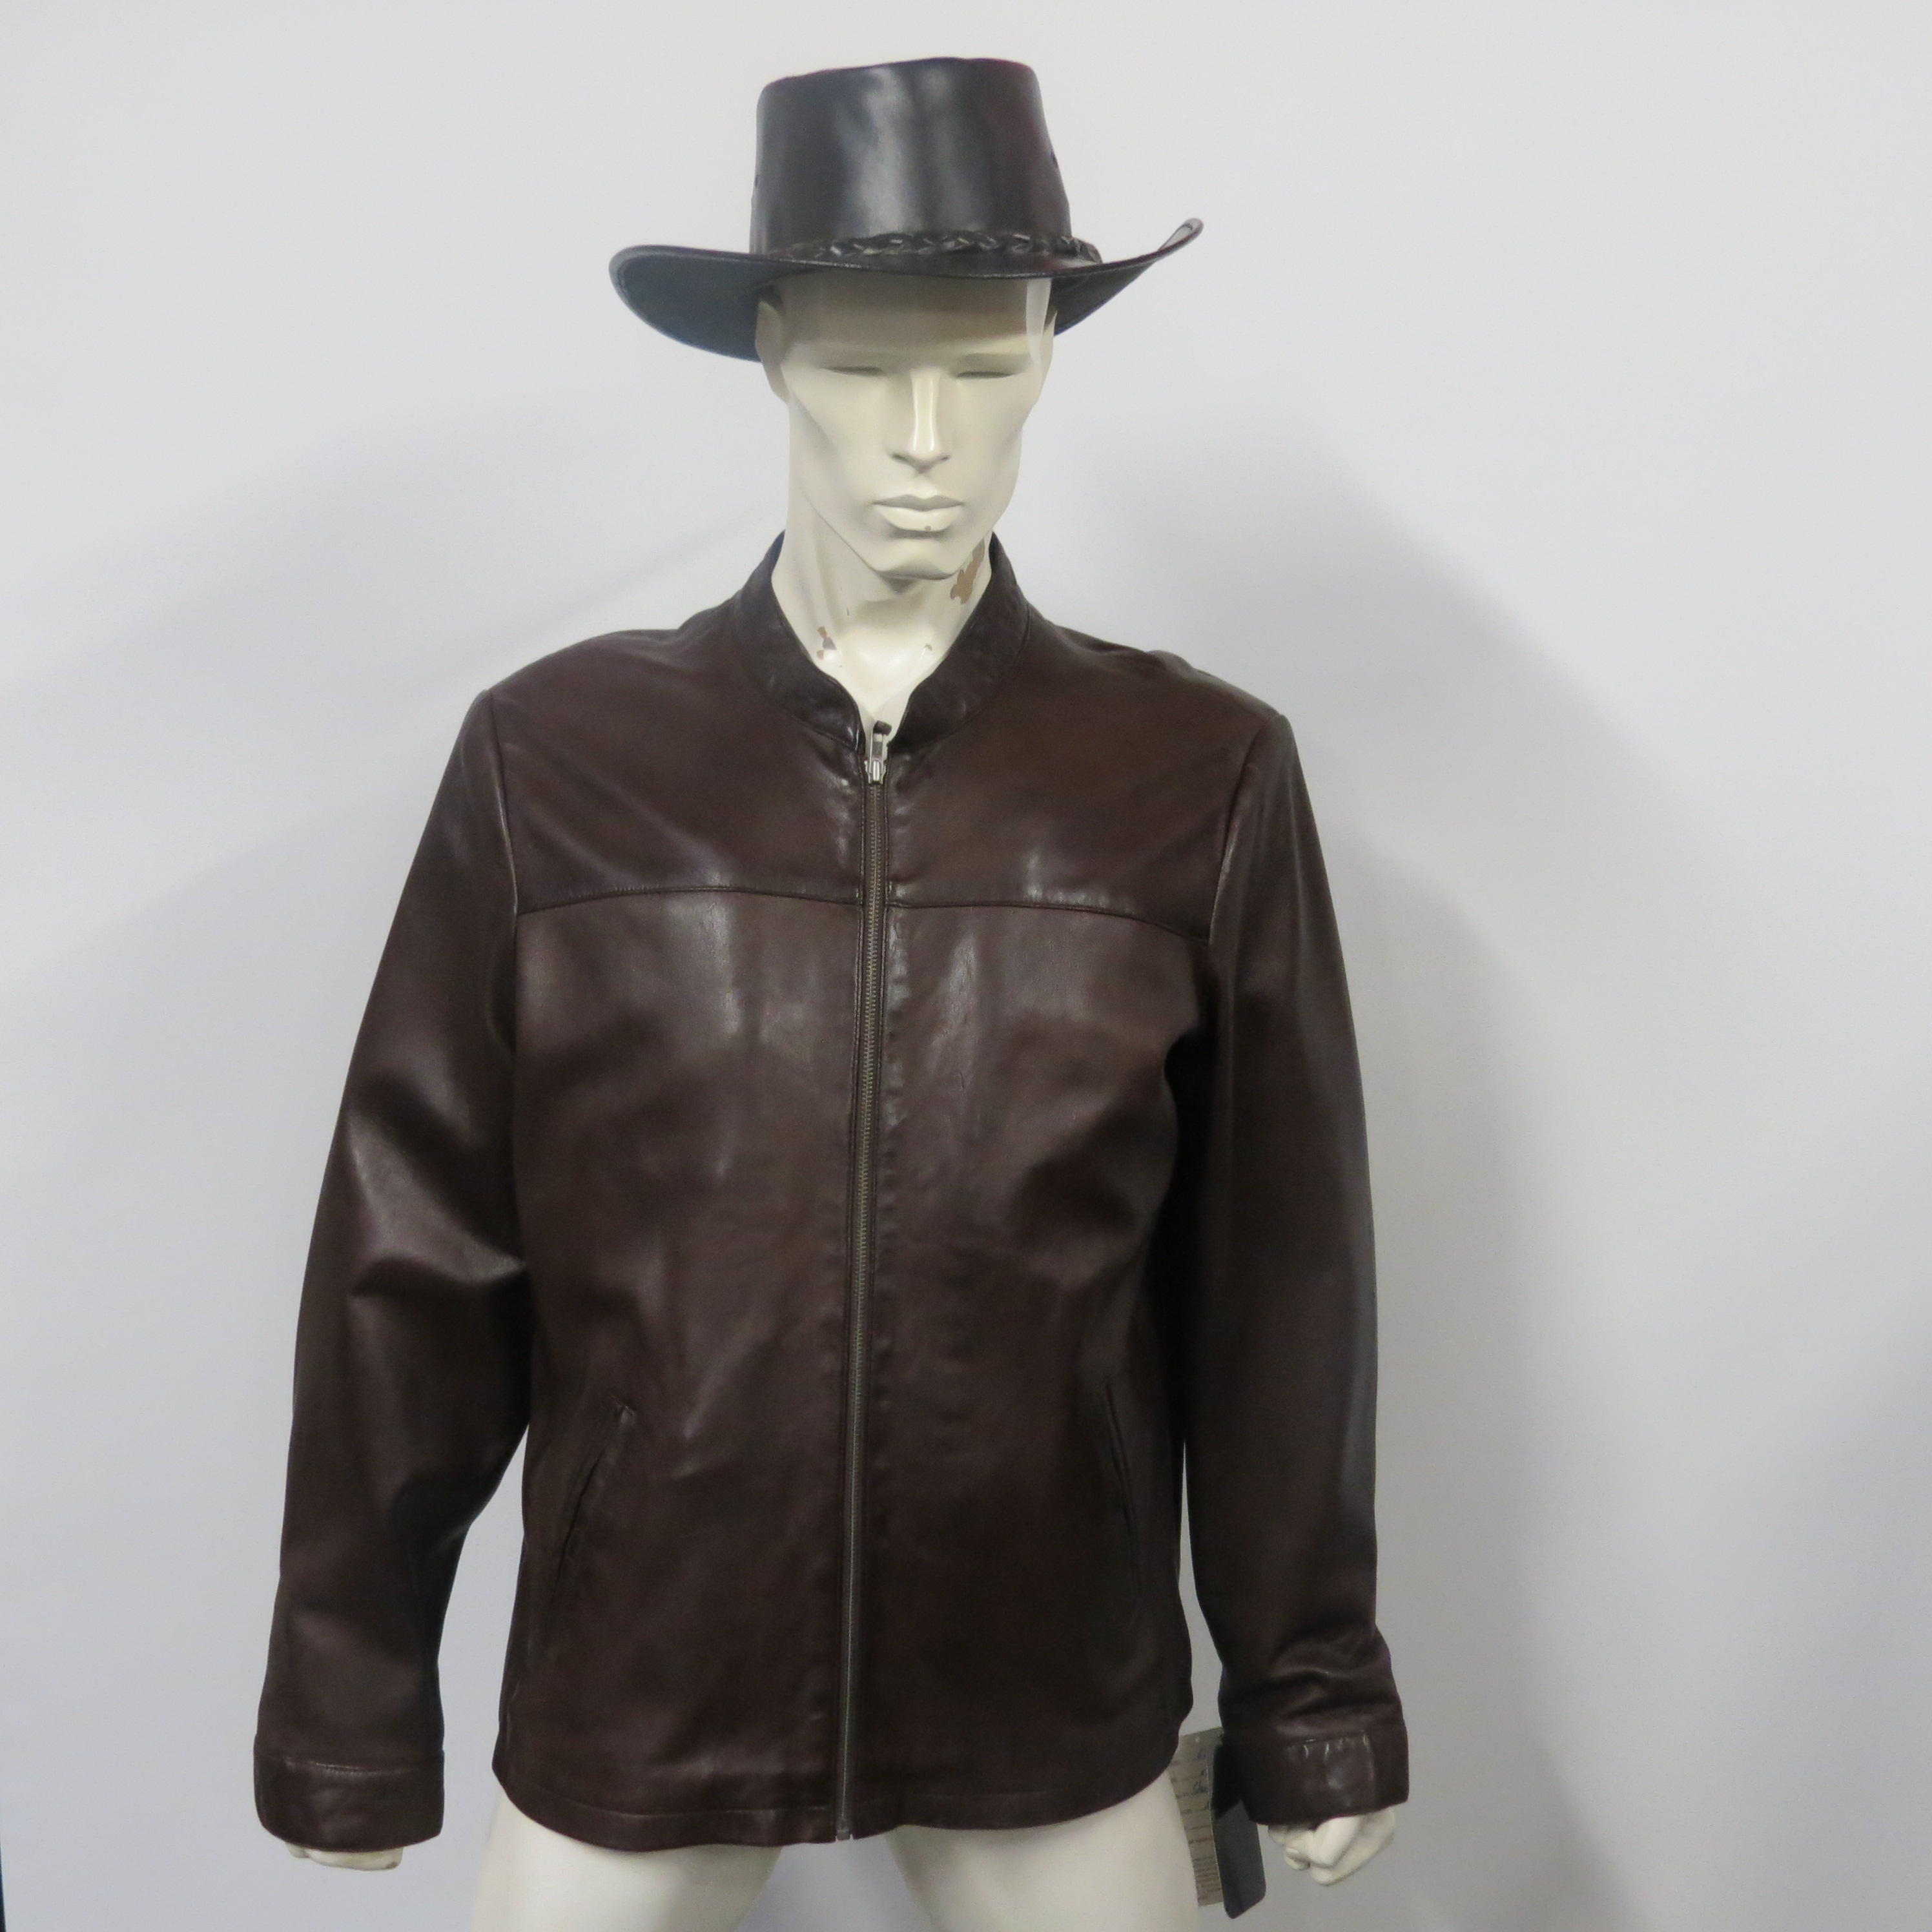 Mens 639 A1 grade soft nappa leather, available in Black or brown (pictured) sizes small to 5XL